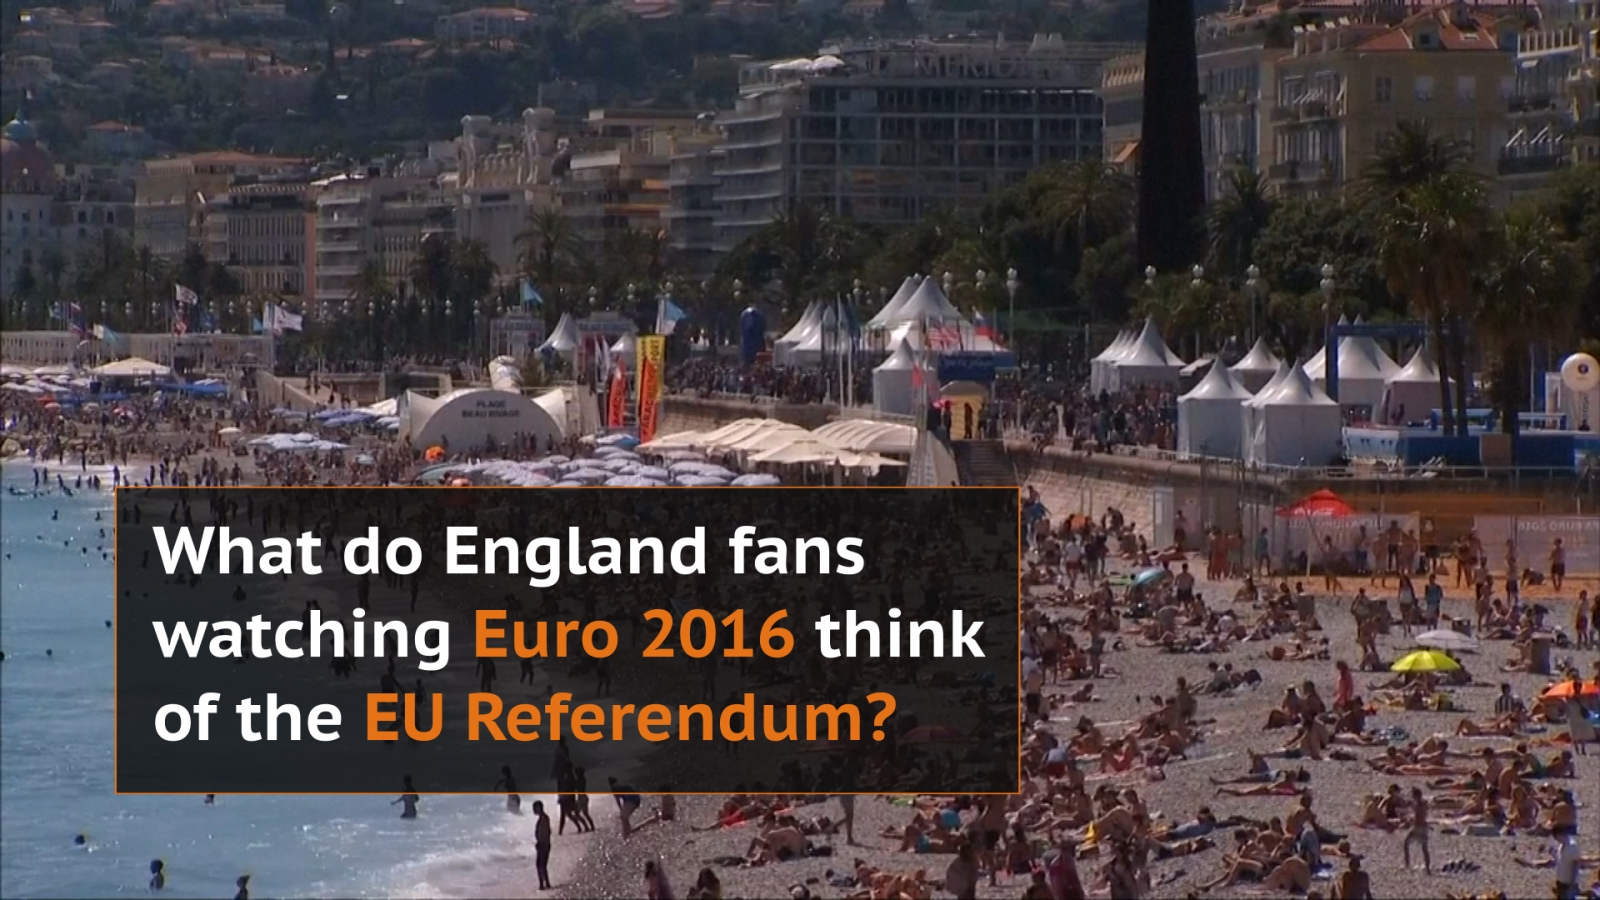 What do England fans at Euro 2016 think of a potential Breixt?